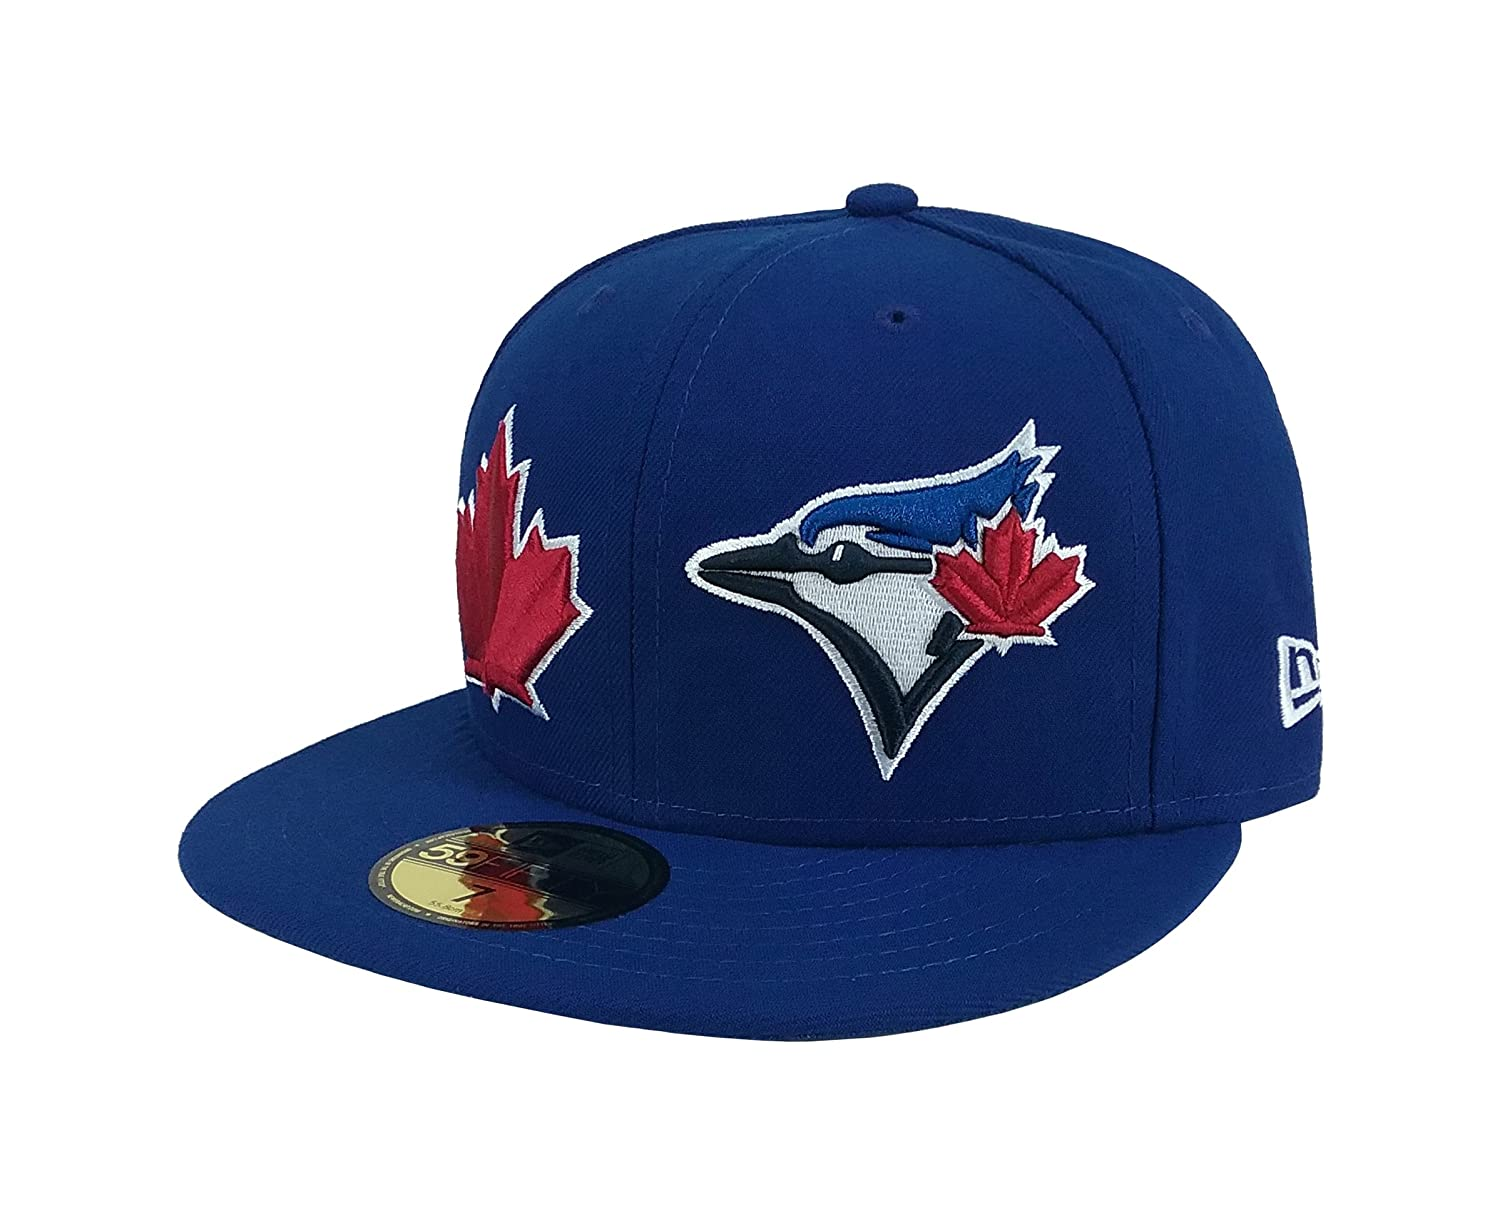 factory price c5830 84ba9 New Era 59Fifty Hat MLB Toronto Blue Jays Heritage Patch d Up Royal Blue Cap  (7 5 8) at Amazon Men s Clothing store